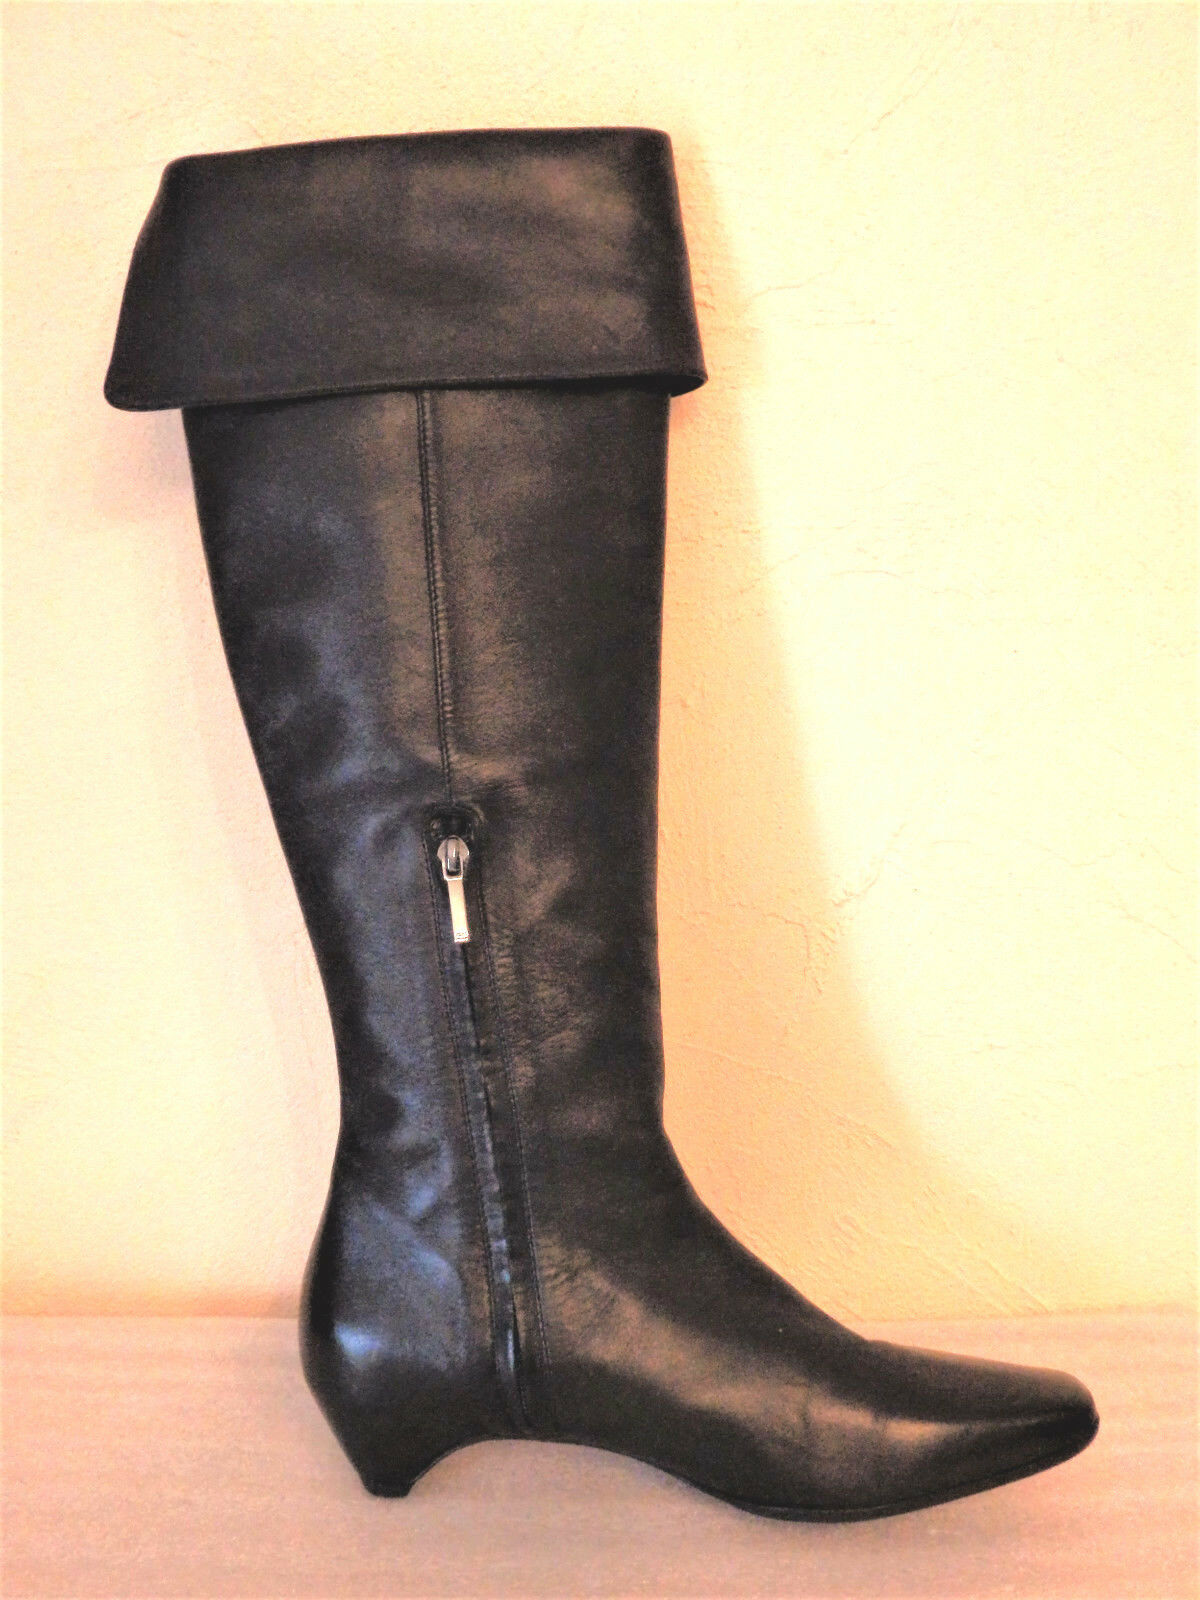 CHRISTIAN DIOR - BOOTS - LEGGINGS - - - LEATHER - SIZE 38,5 - GENUINE 2e1b21